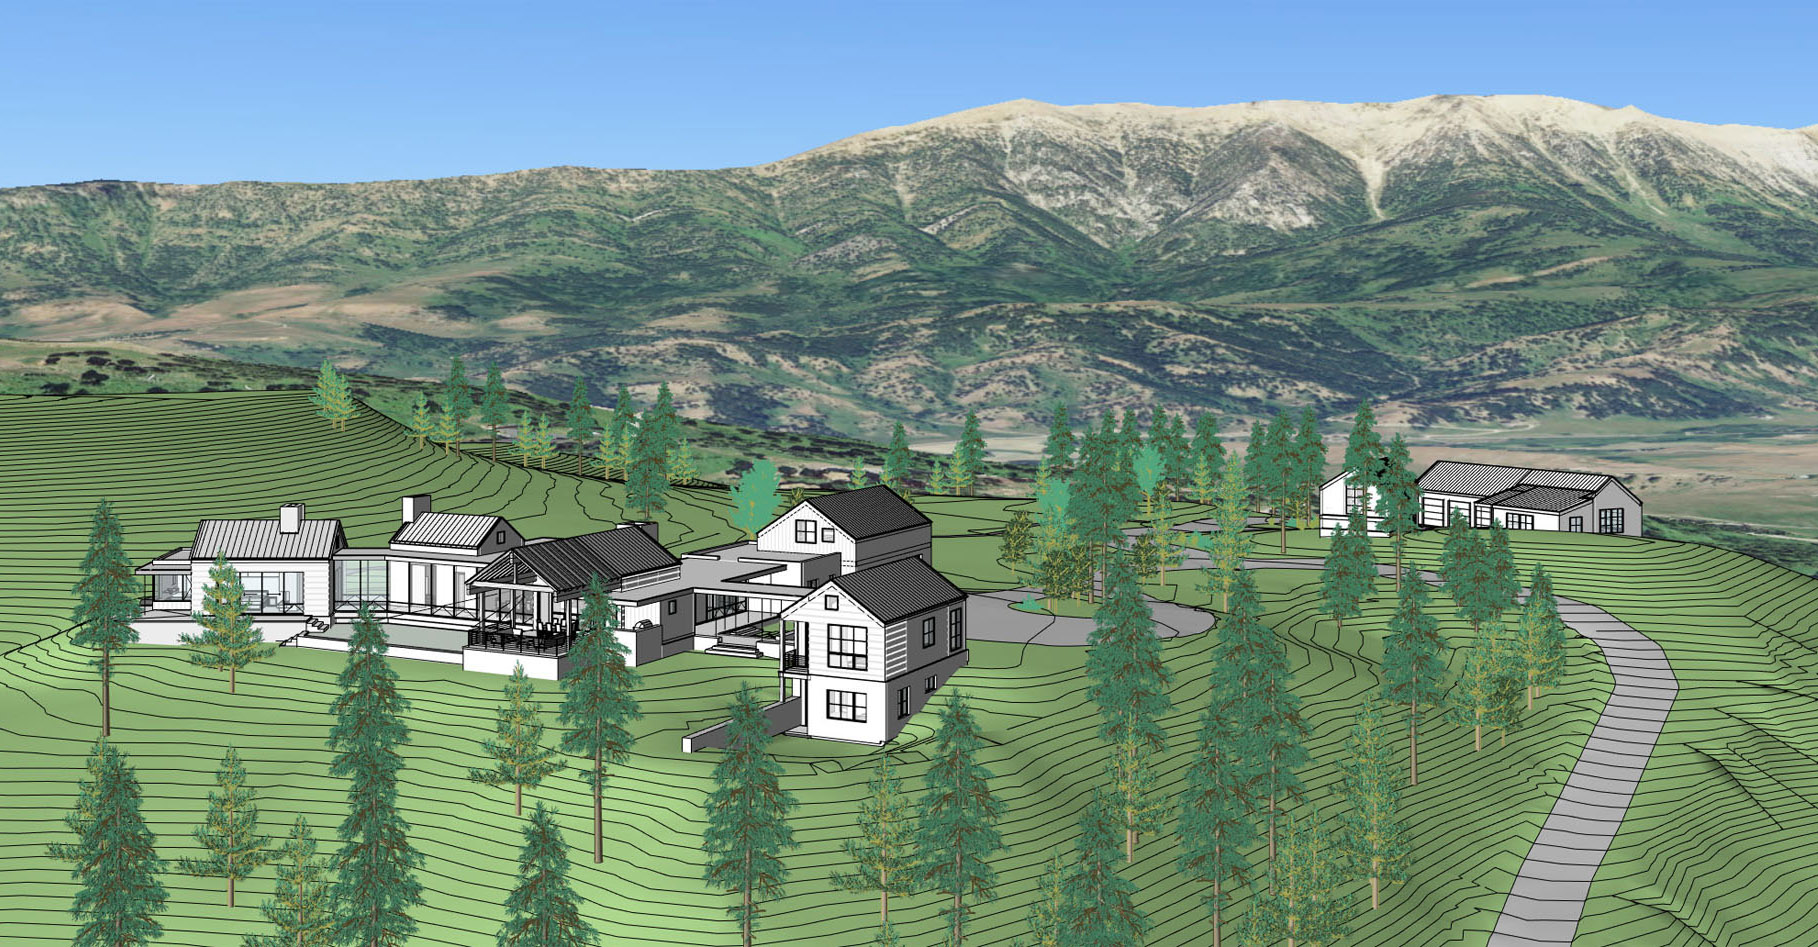 Project Modeling - A way to convey our vision of the project.3D modeling software helps to illustrate a site's character, challenges and opportunities.